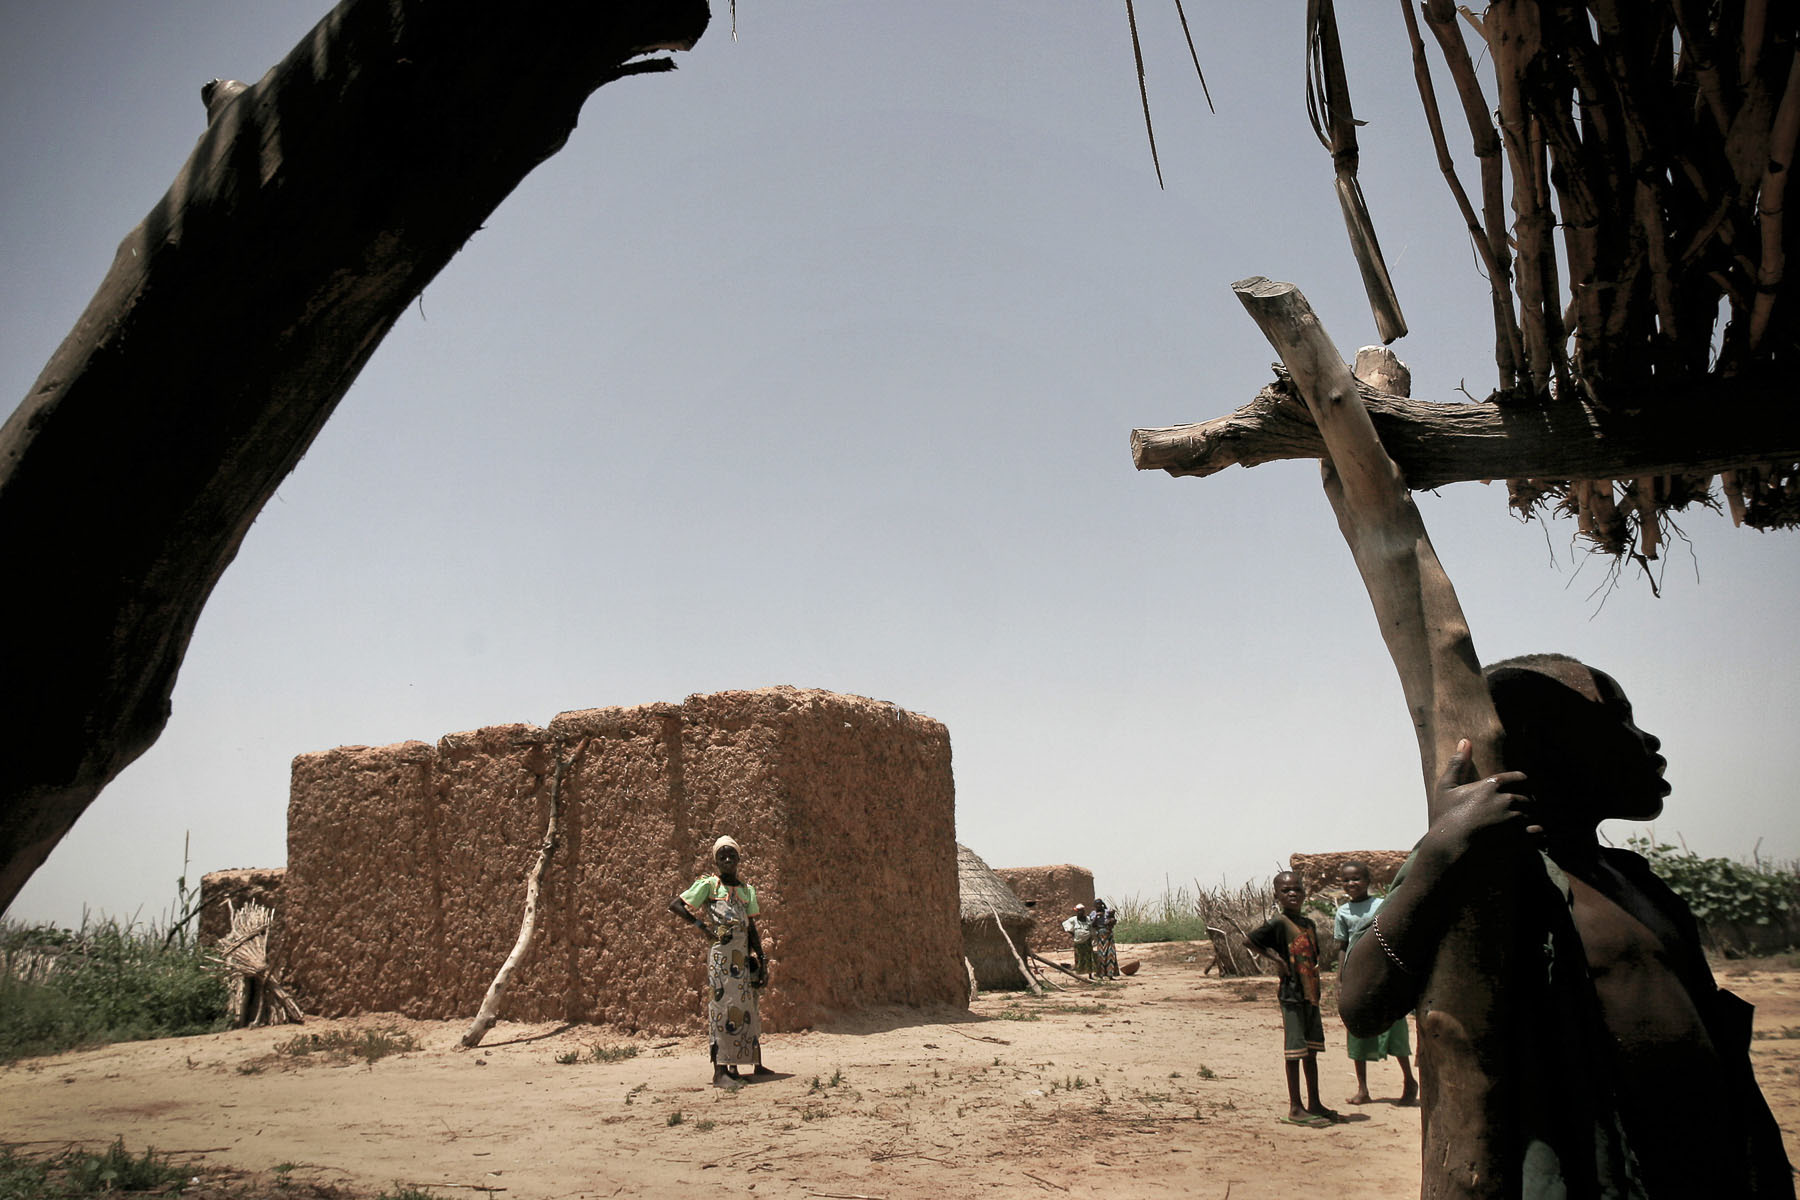 Village in the Sahel area in September 2005